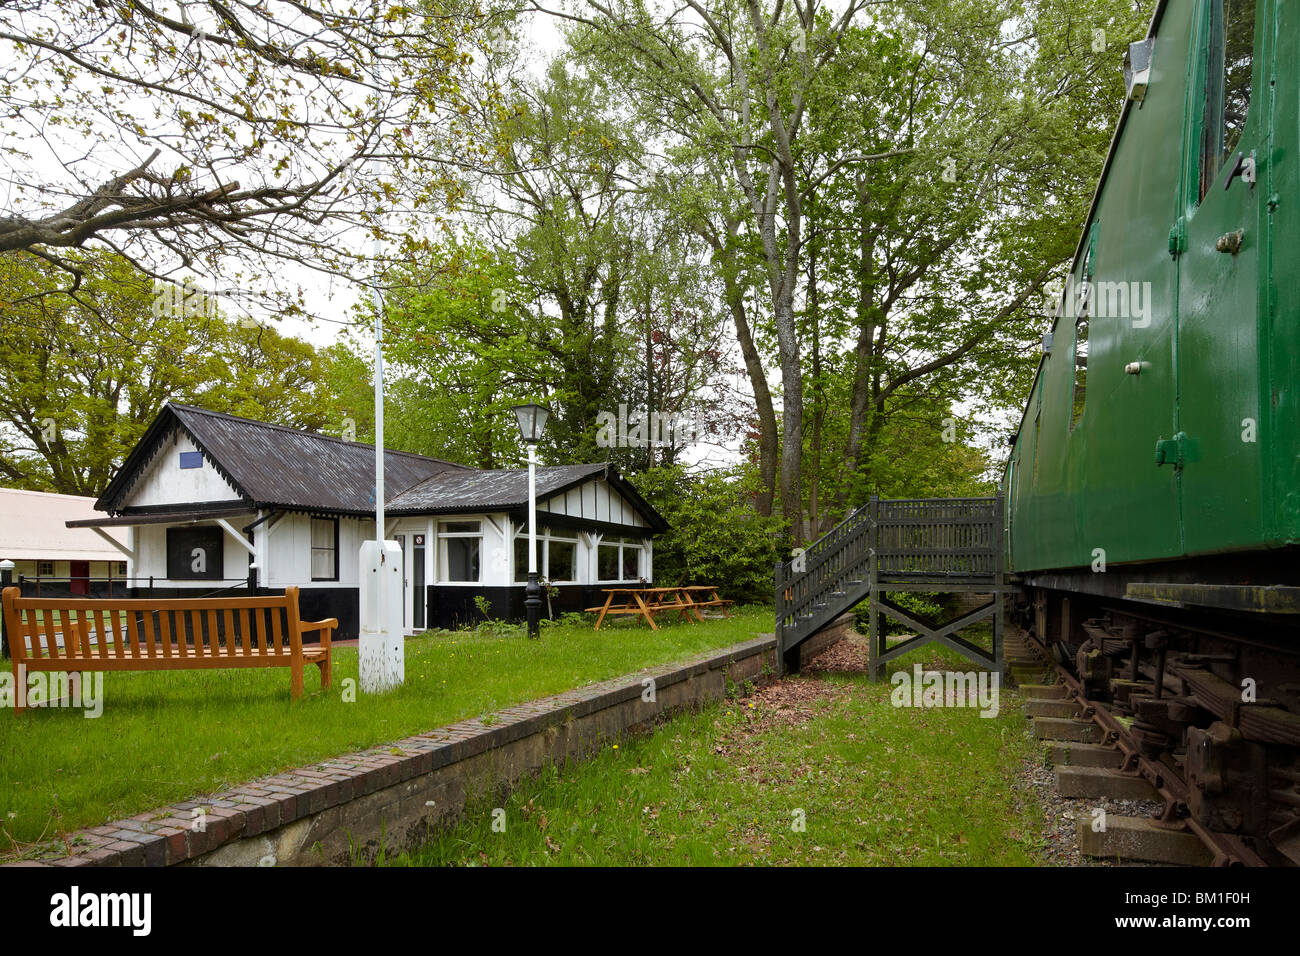 The old railway station bisley camp surrey stock photo for Railroad stations for sale